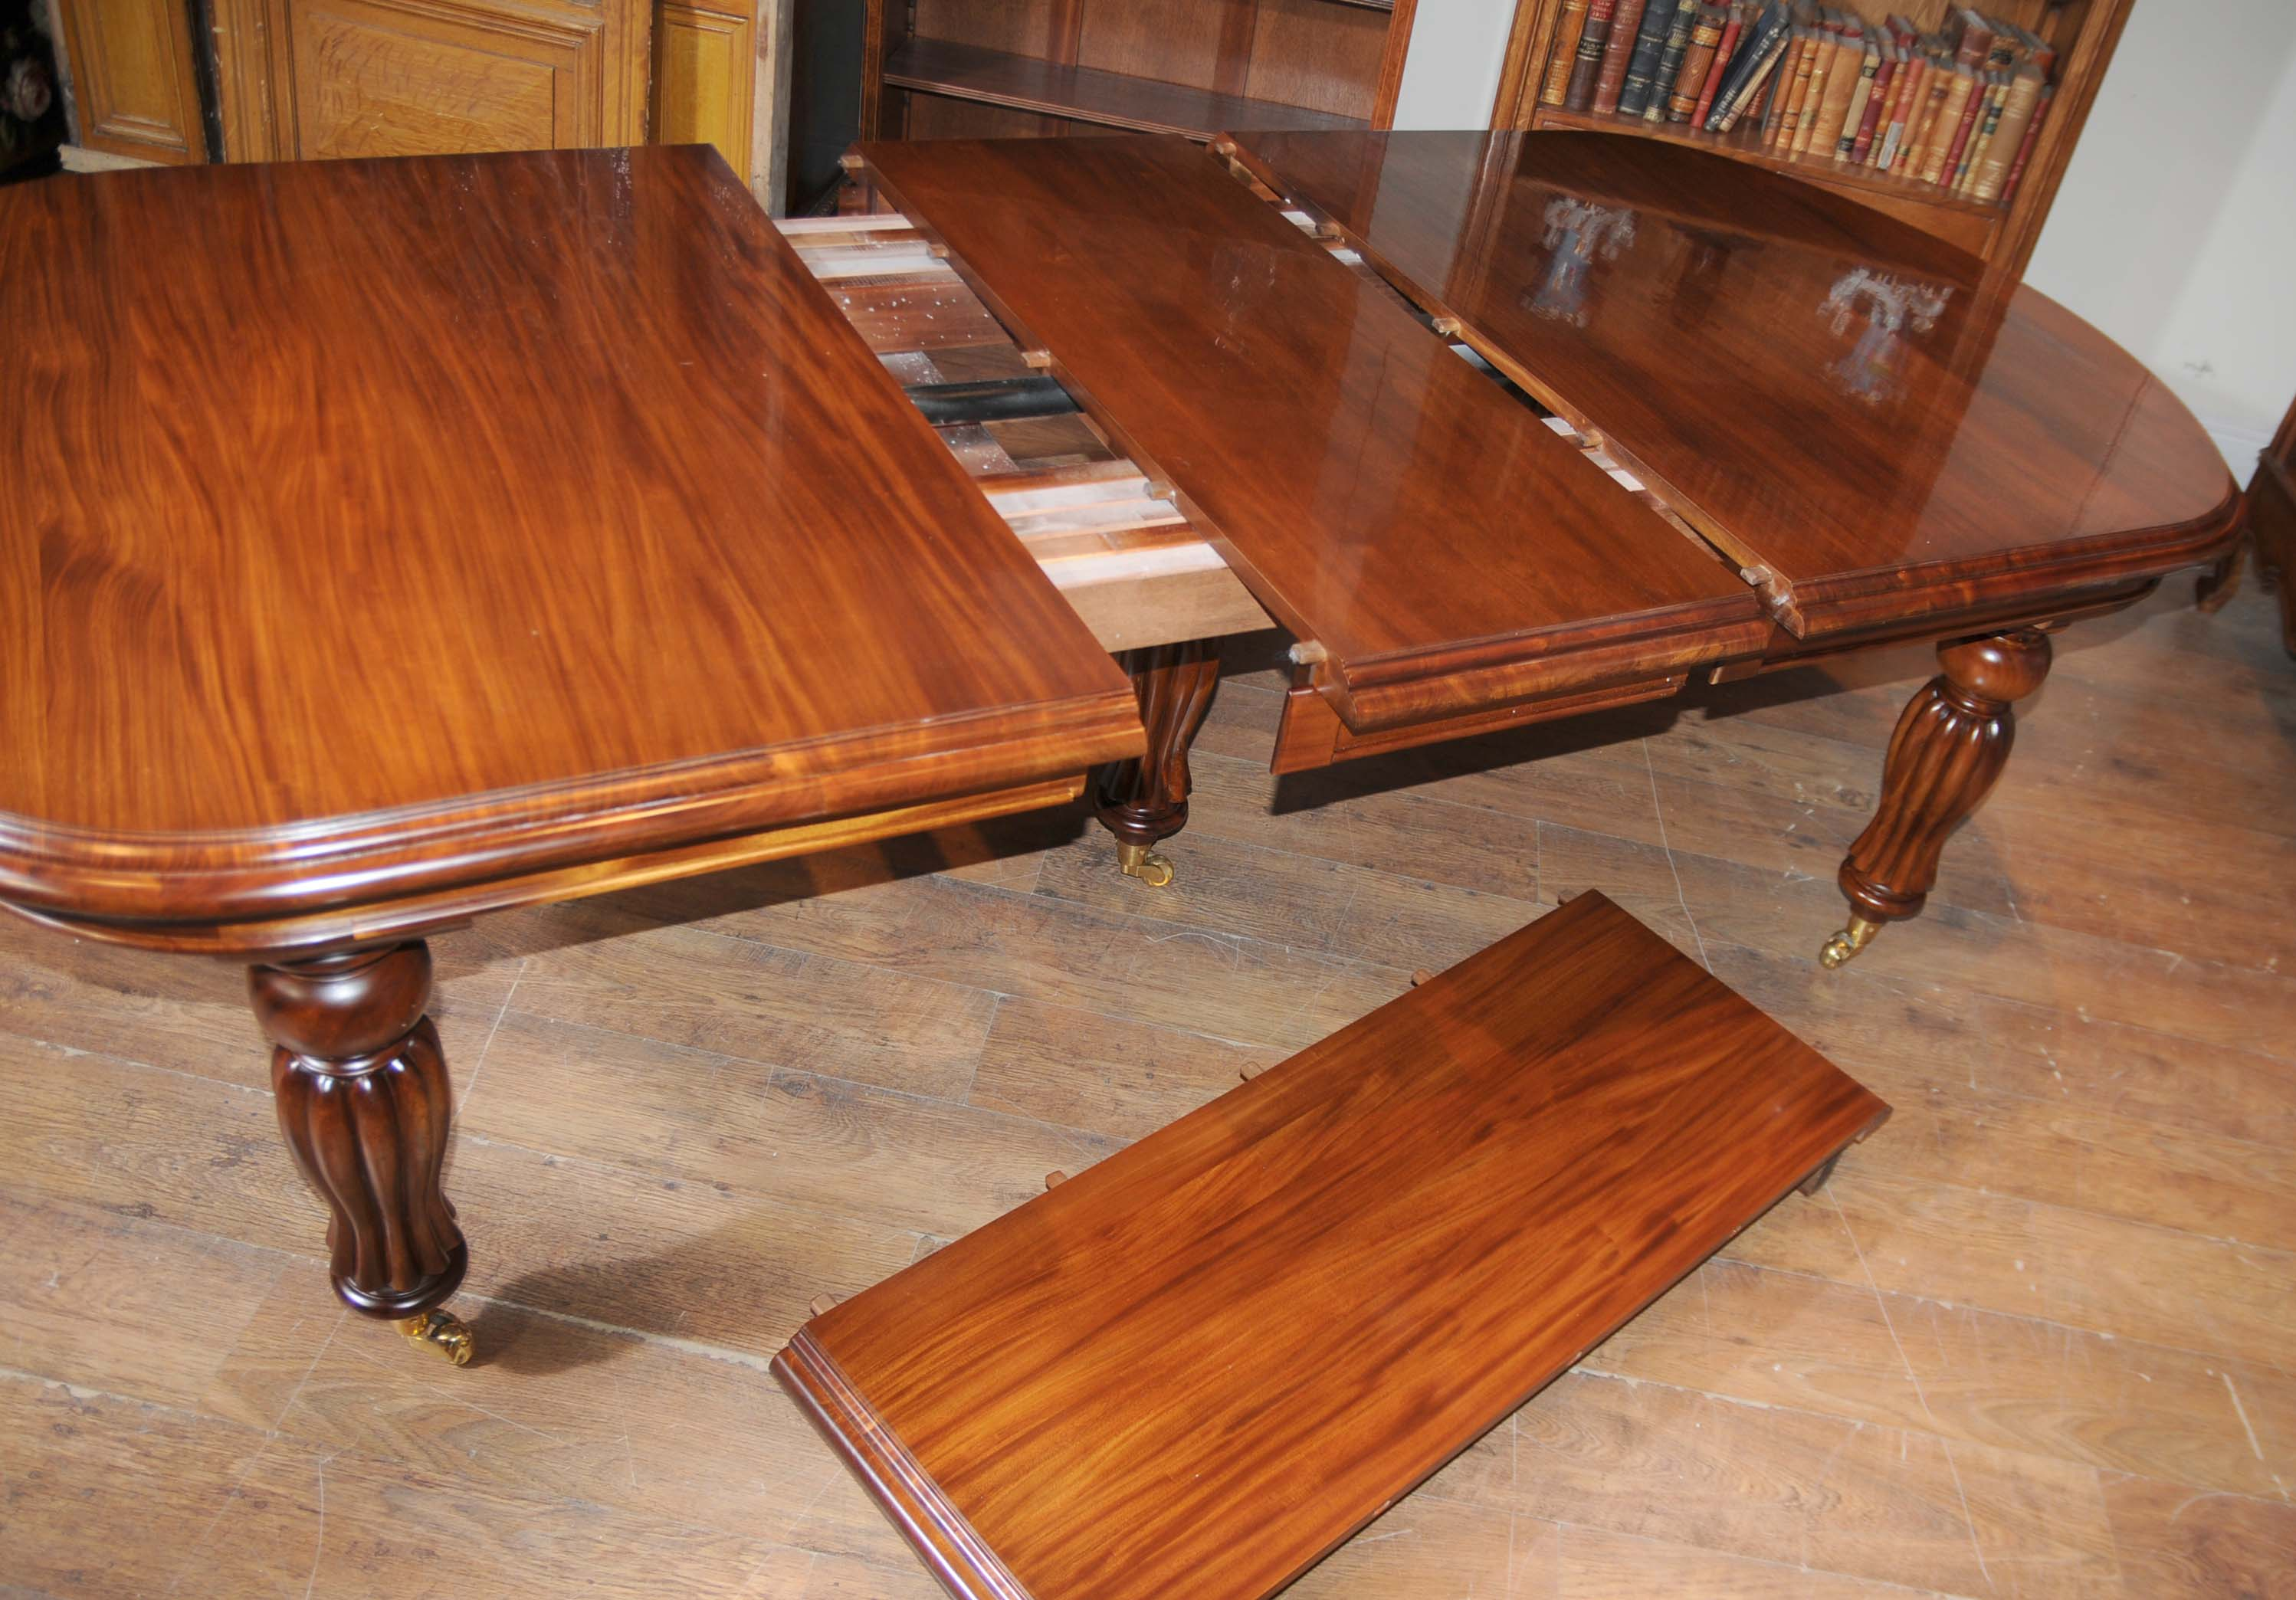 How To Set Up A Victorian Dining Table With Leaves